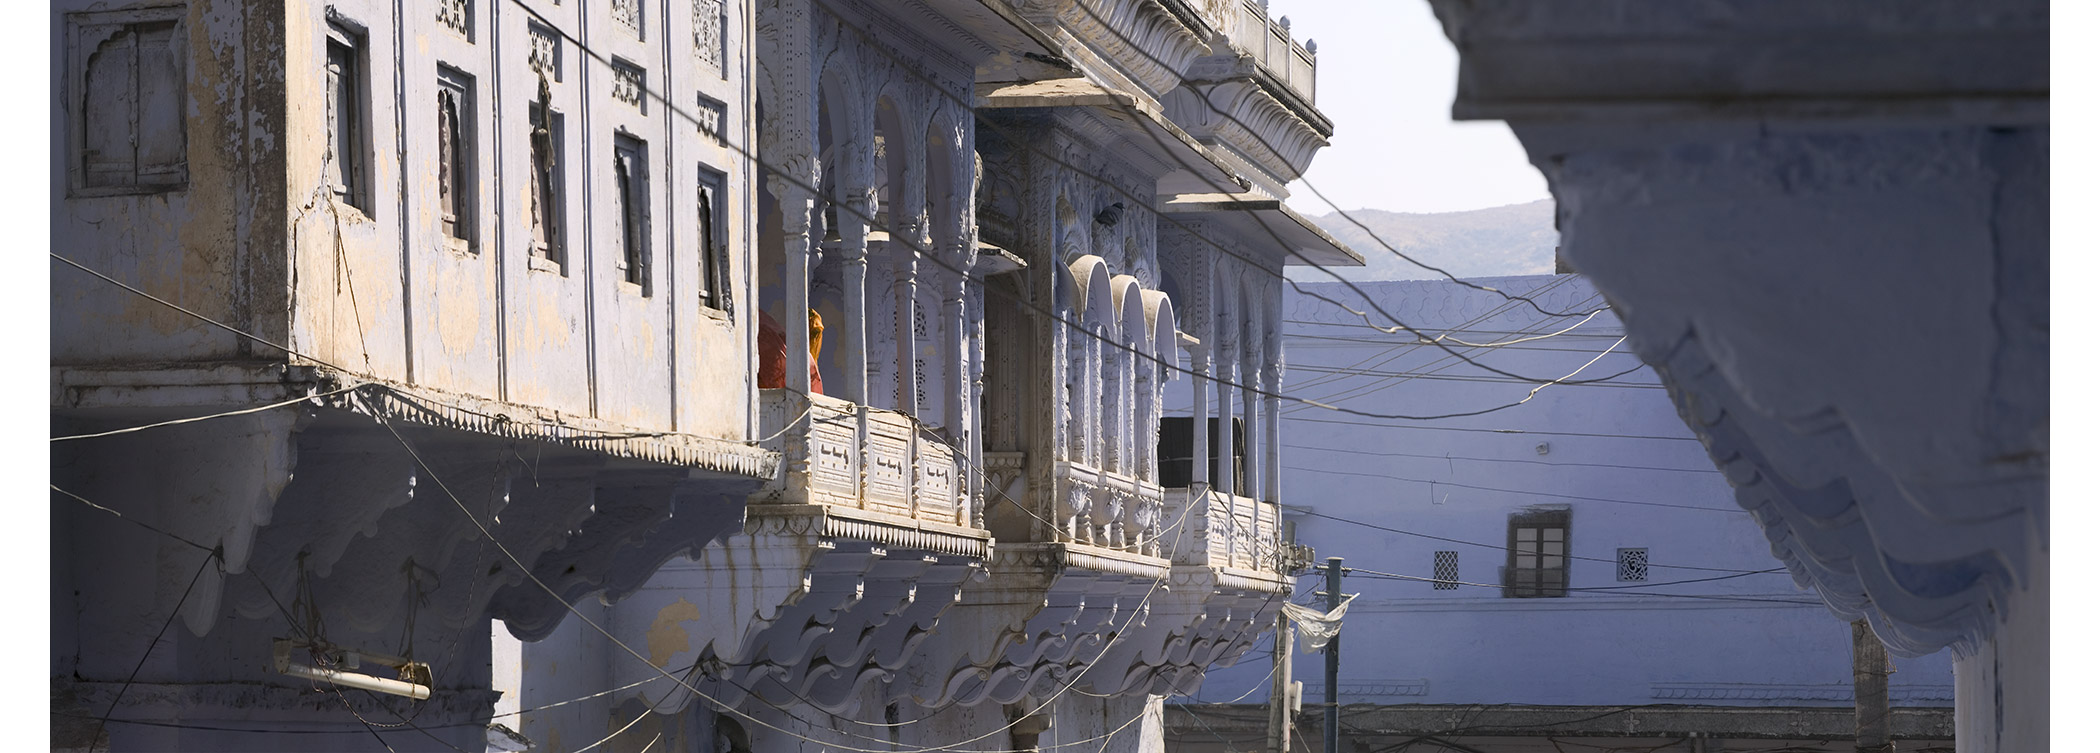 Paul Grundy Photography. Pushkar